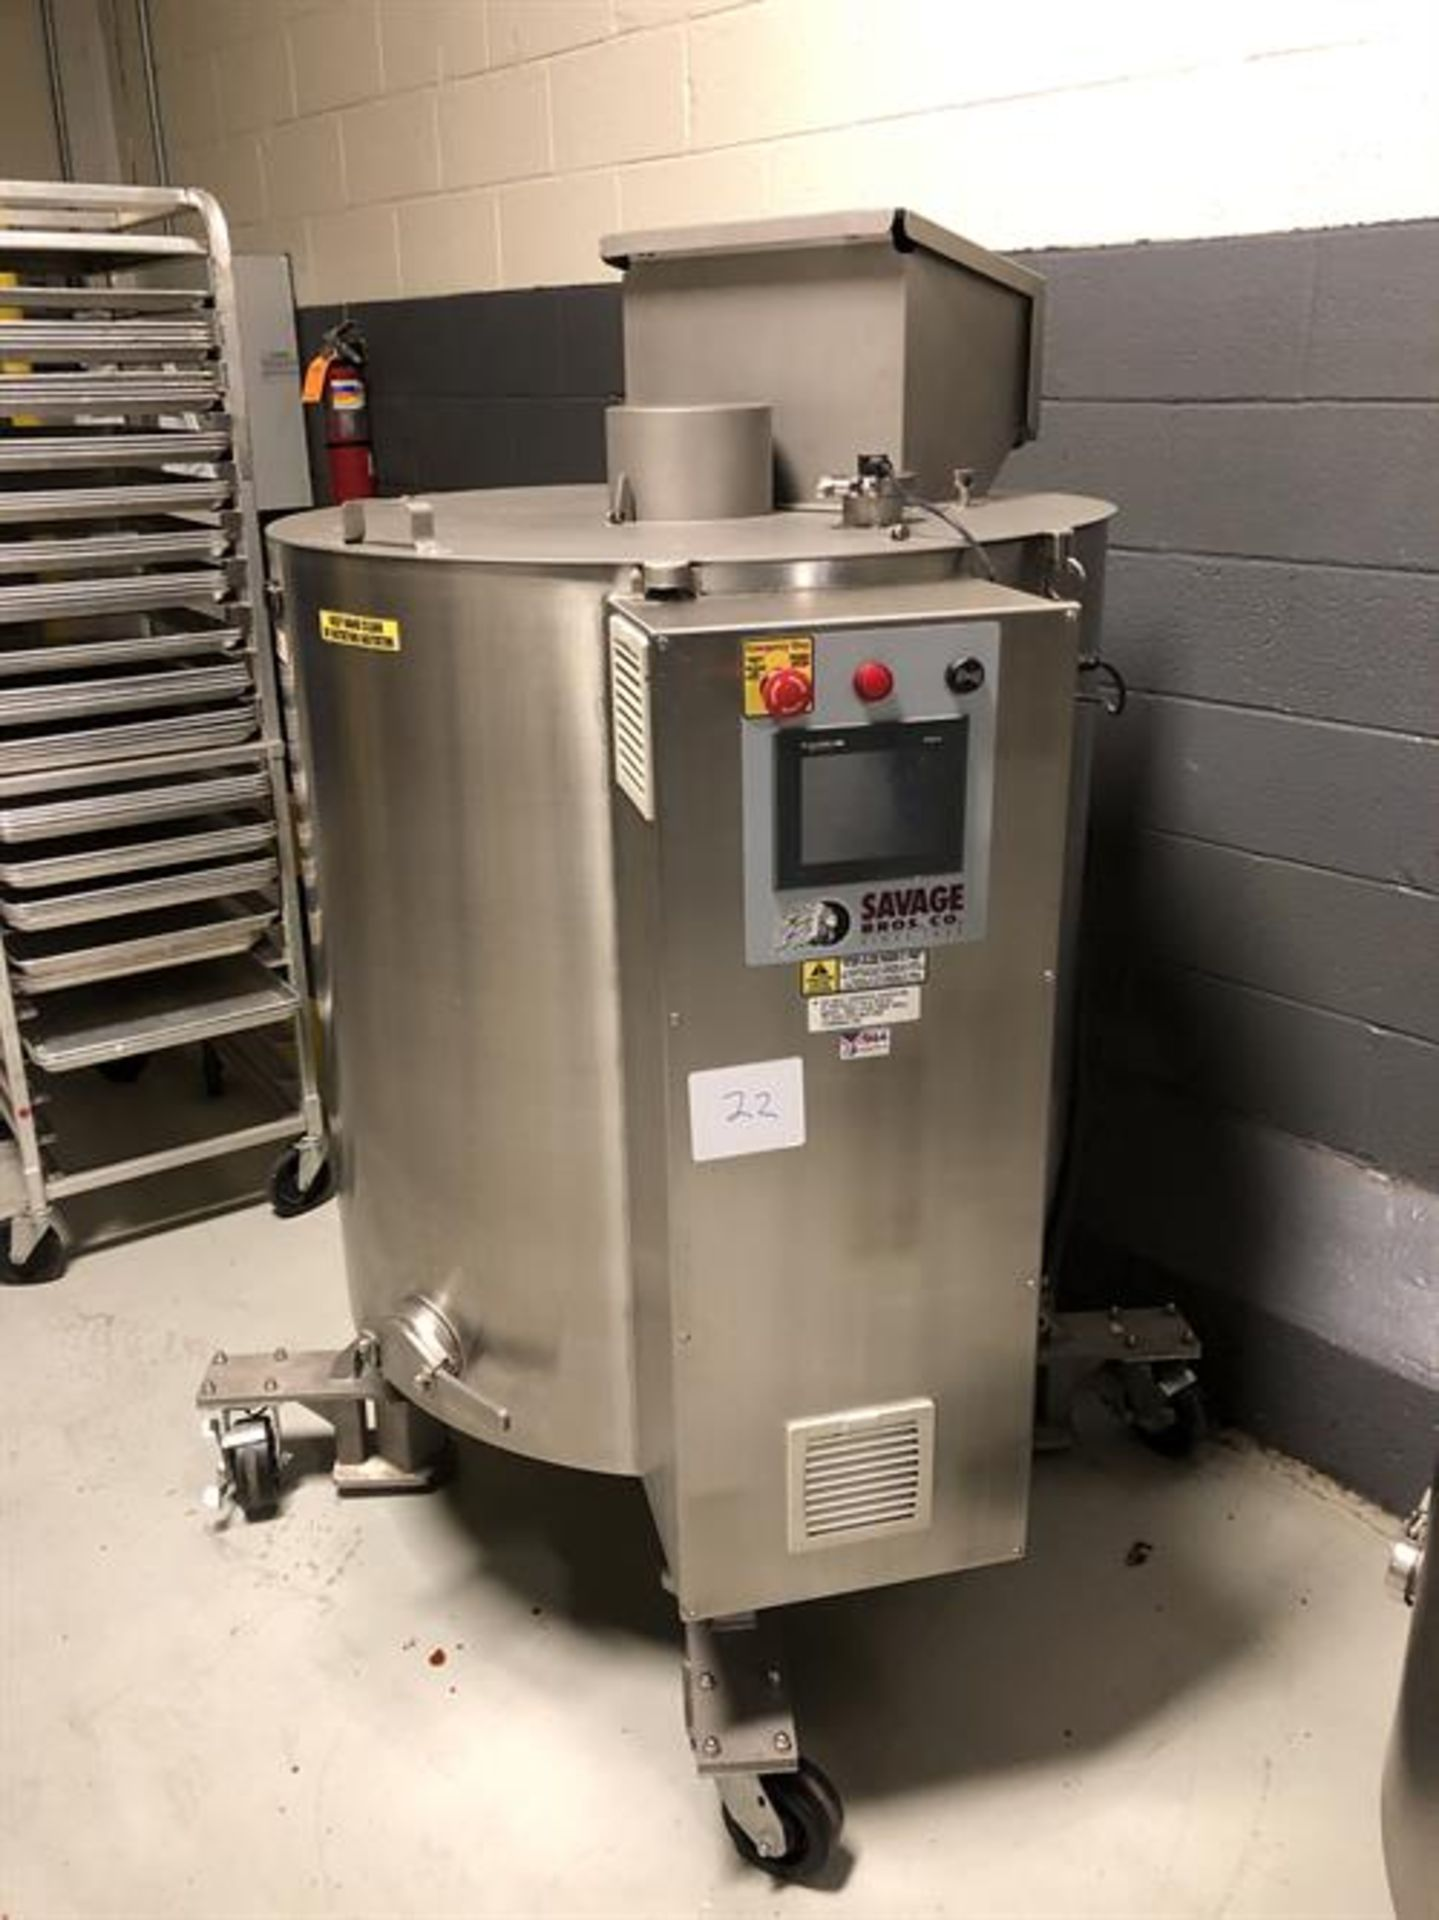 Savage 1250-lb Stainless Steel Choclate Melter - model 0974-46-500, with PLC touchscreen